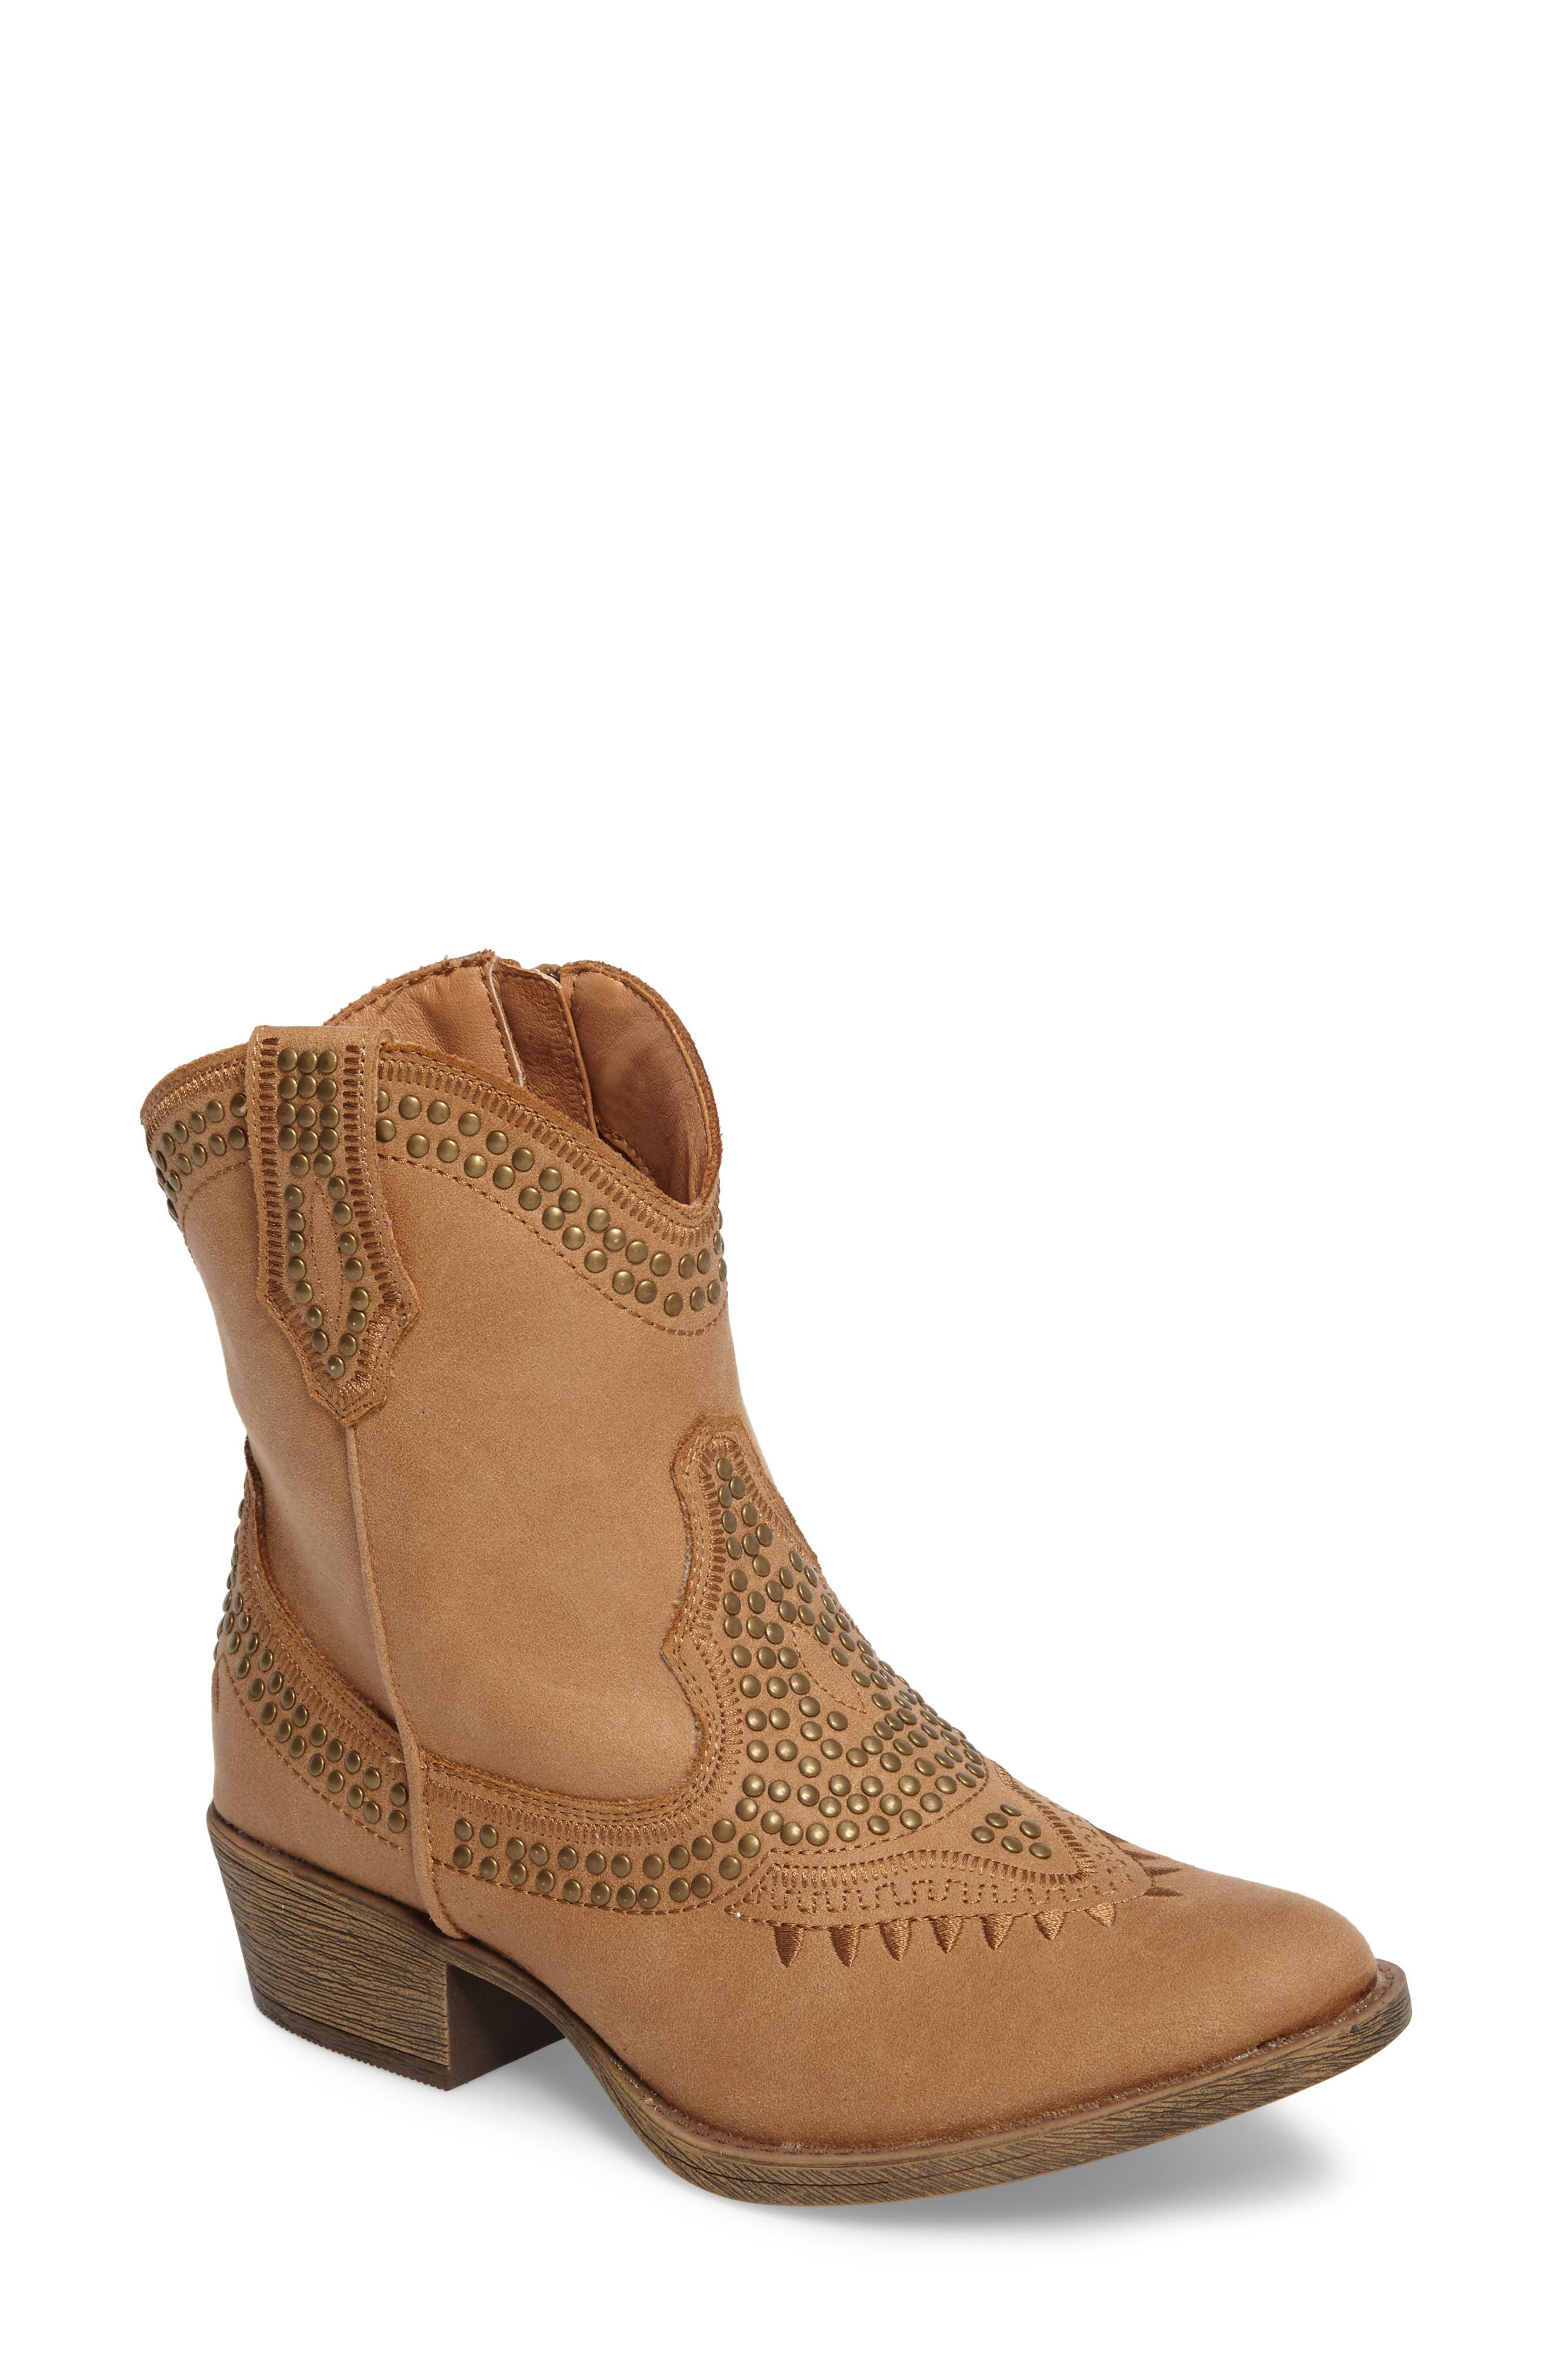 Amour Embellished Western Bootie,                         Main,                         color, Natural